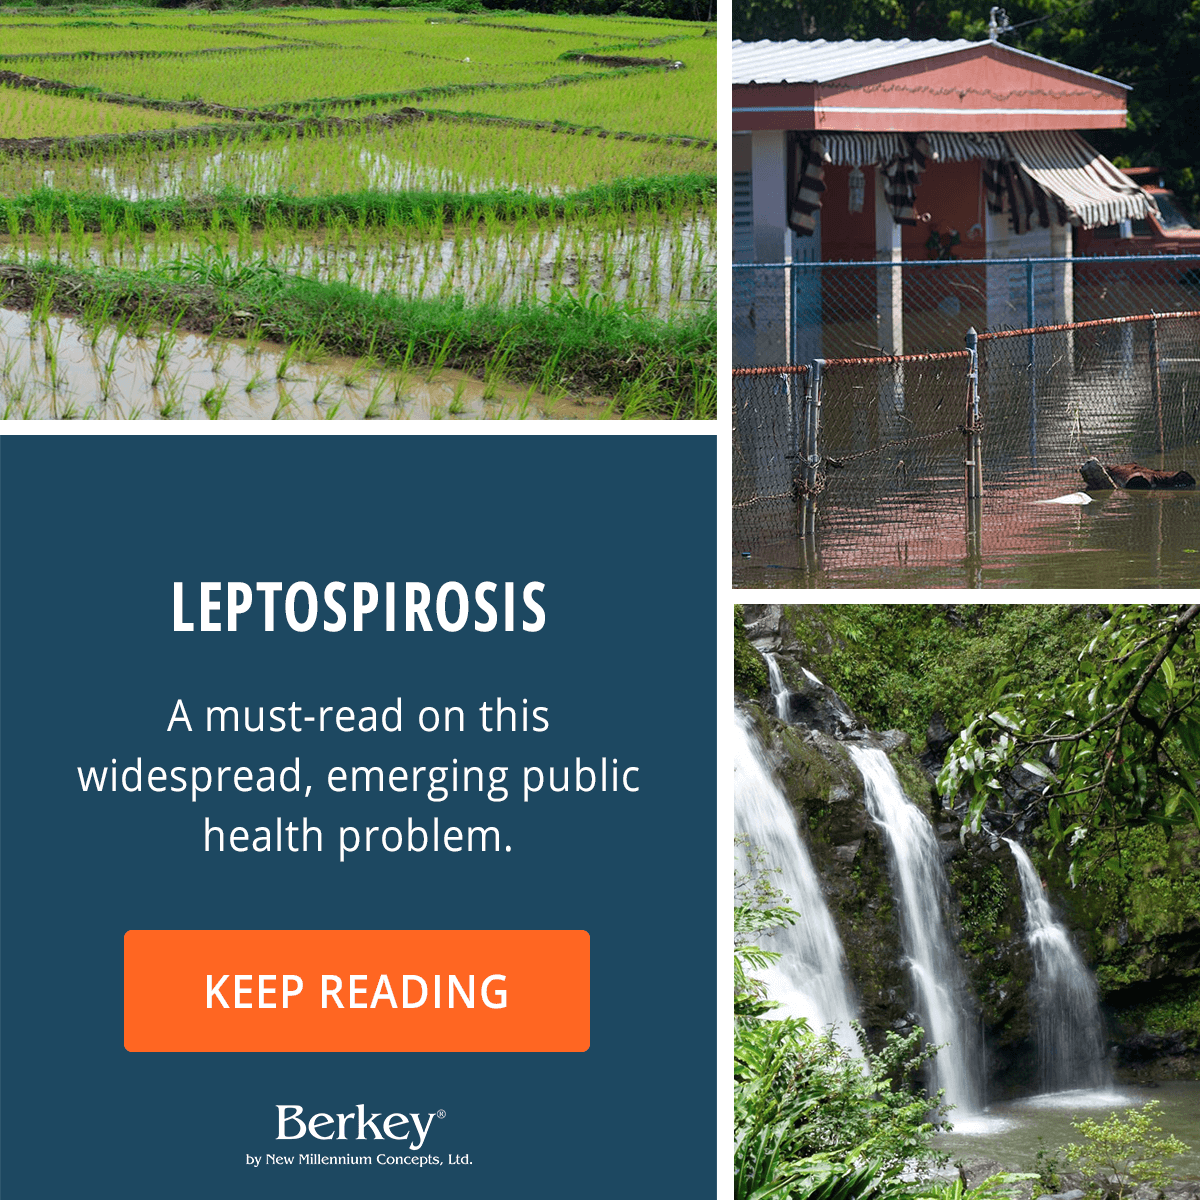 Leptospirosis: A must-read on this widespread, emerging public health problem